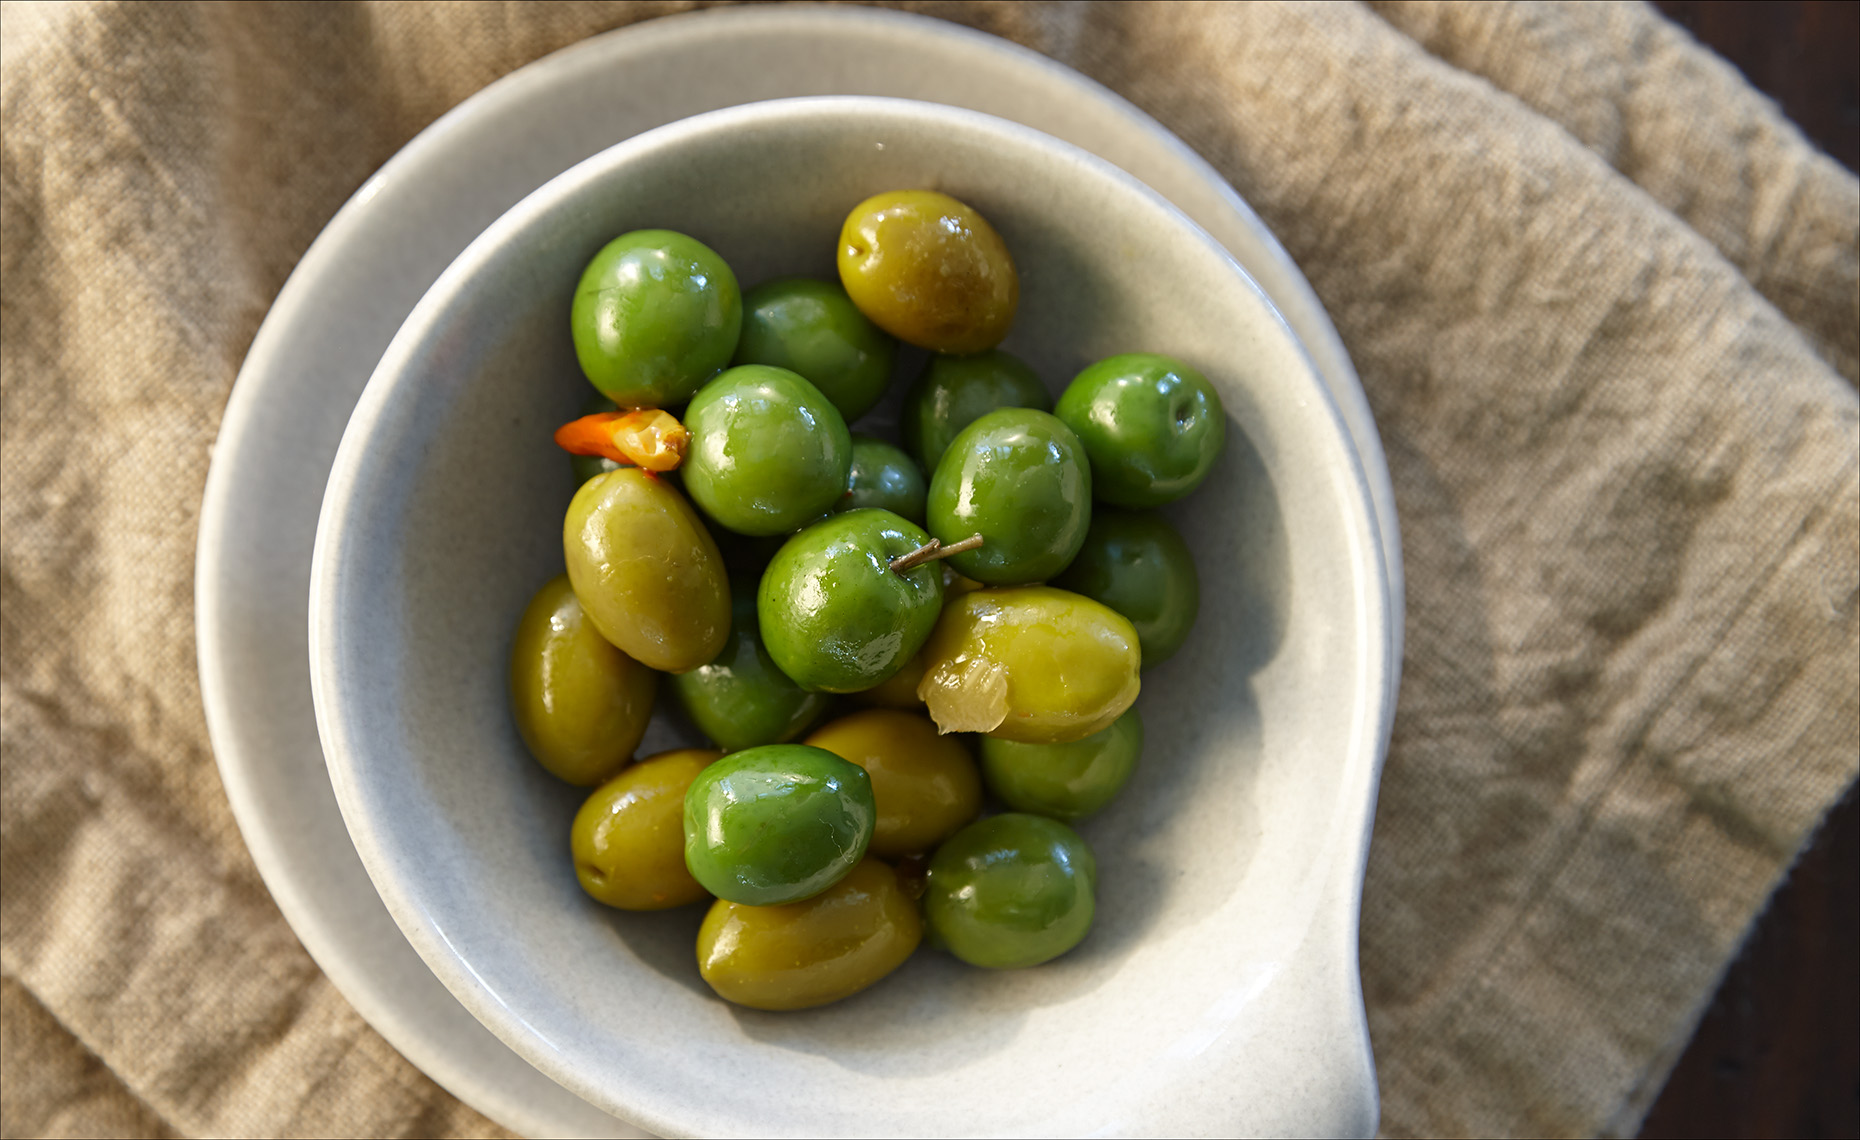 Food Photographer, Vegetable photography, Fruit photography | Pohuski Studios.  Green Olives